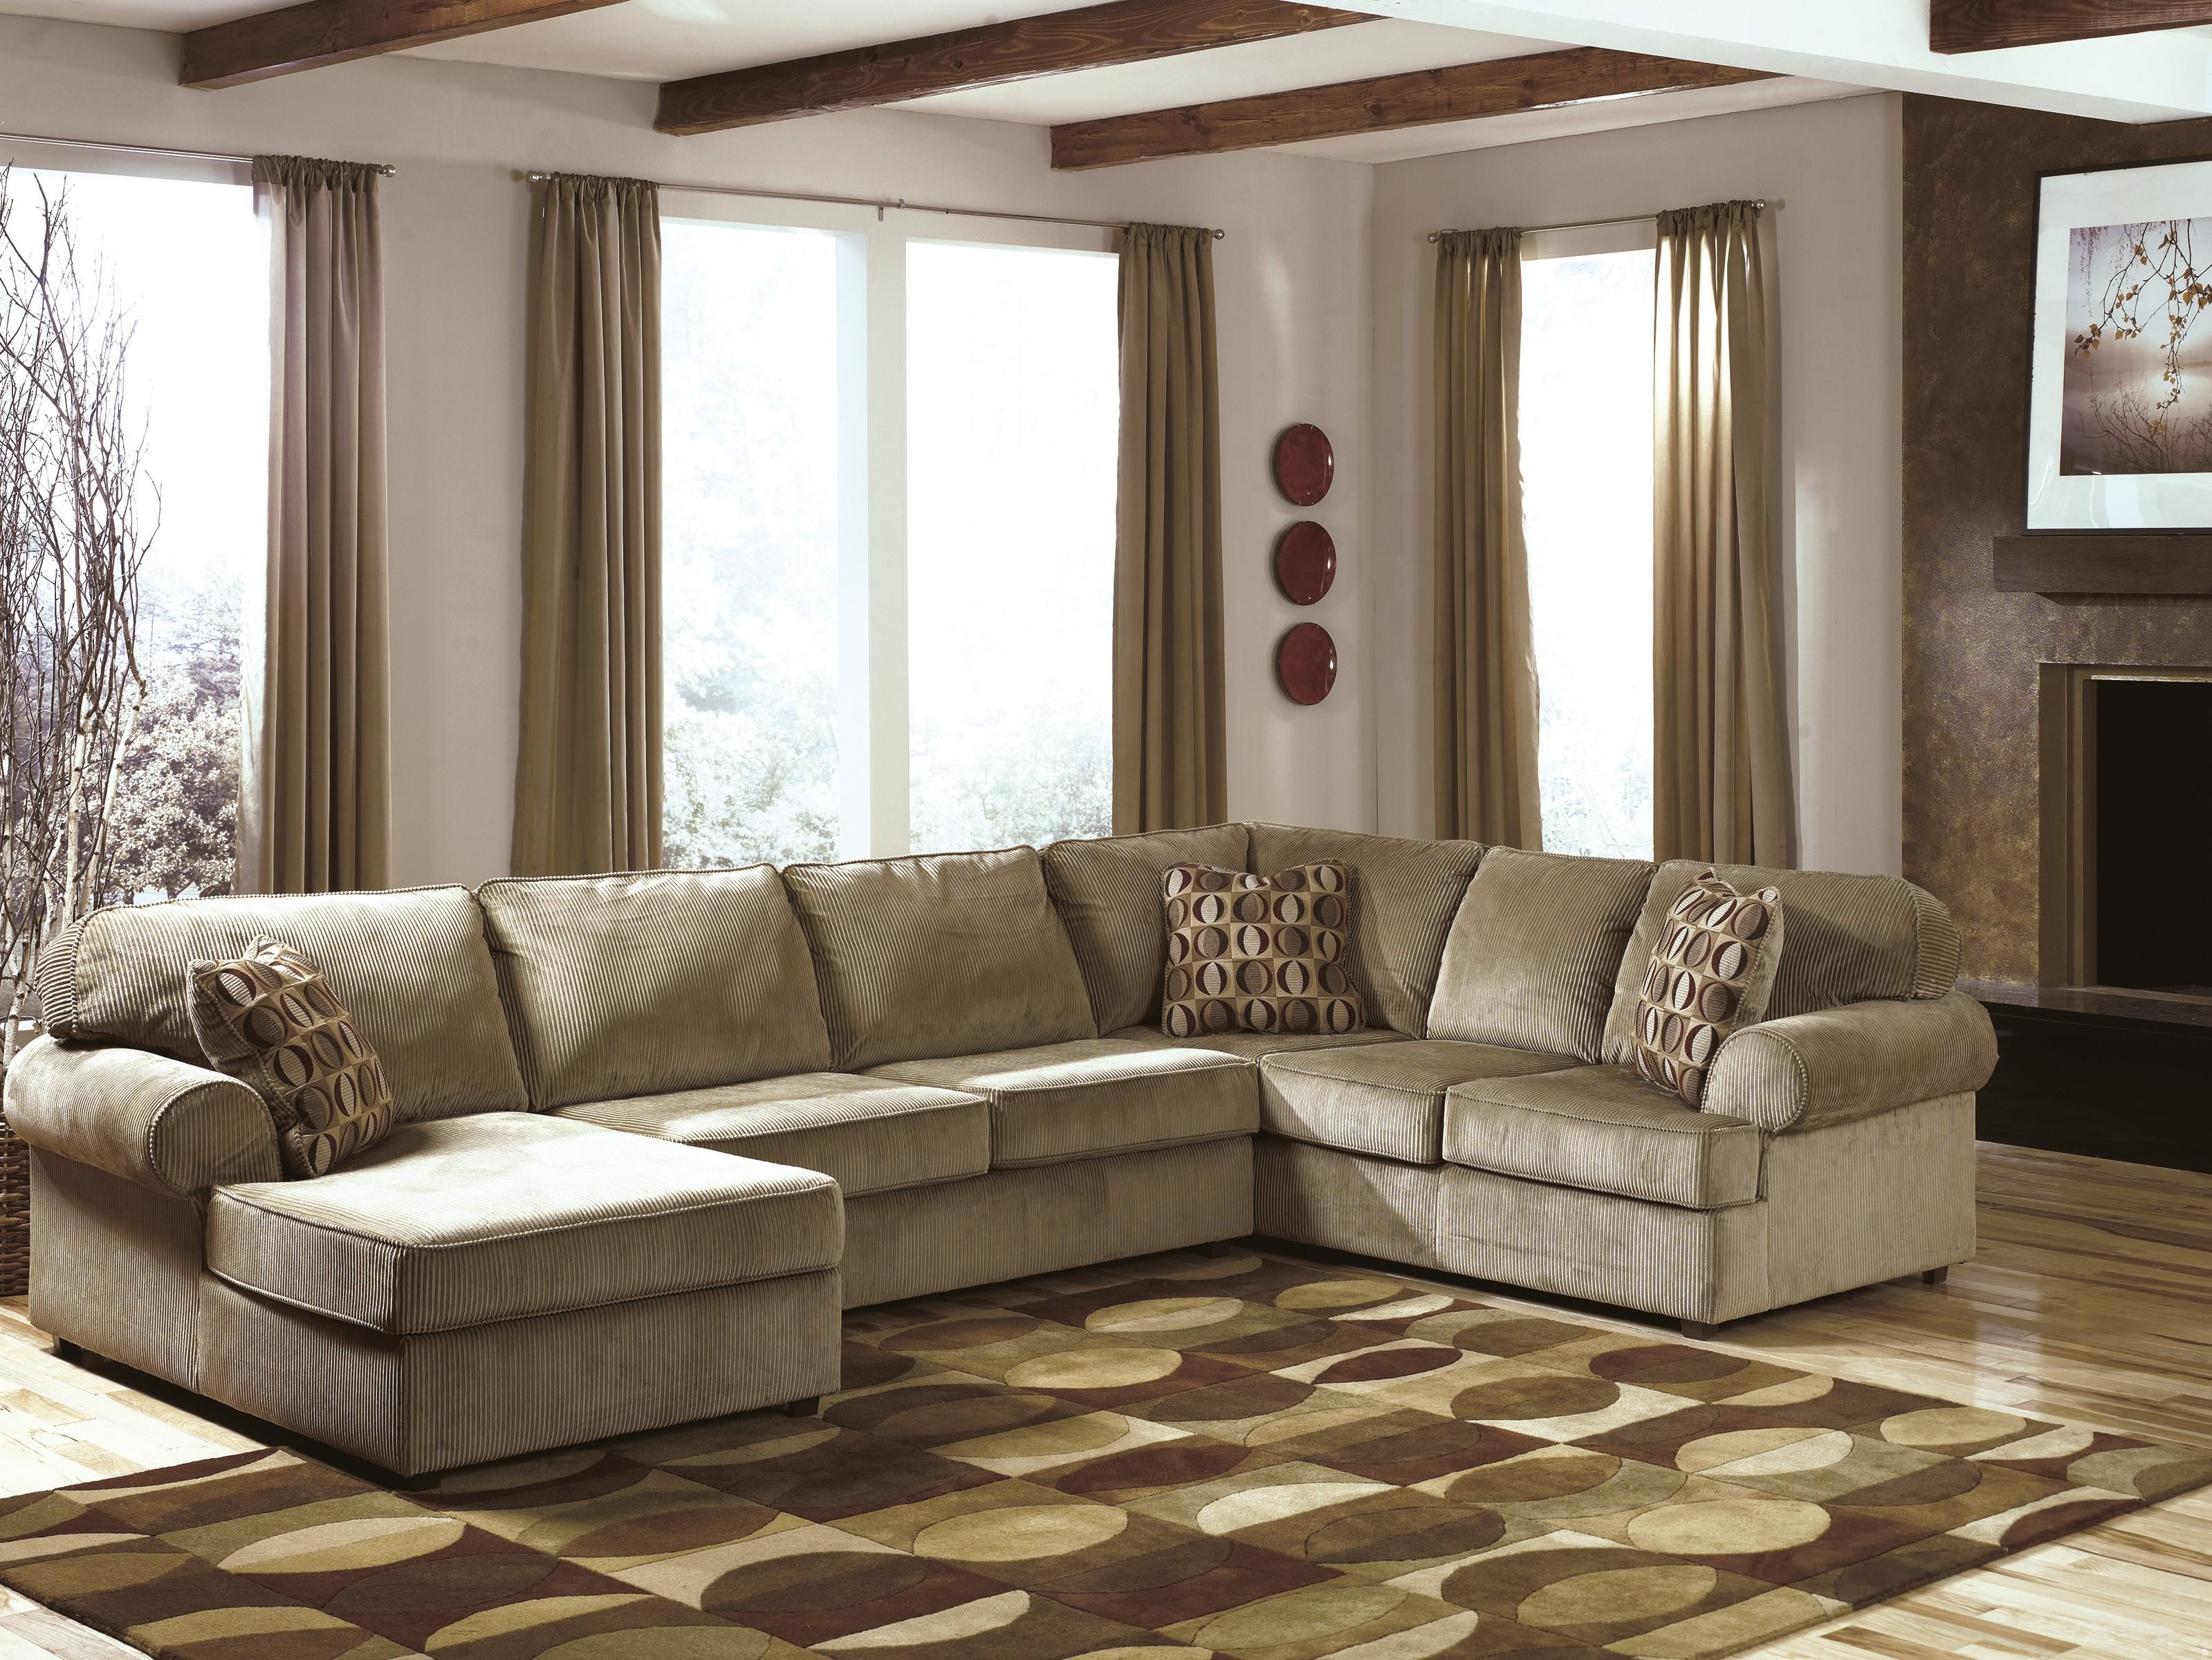 Furniture: Fantastic Sectional Couches With Recliners For Your For Ashley Sectional Sleeper (Image 5 of 15)